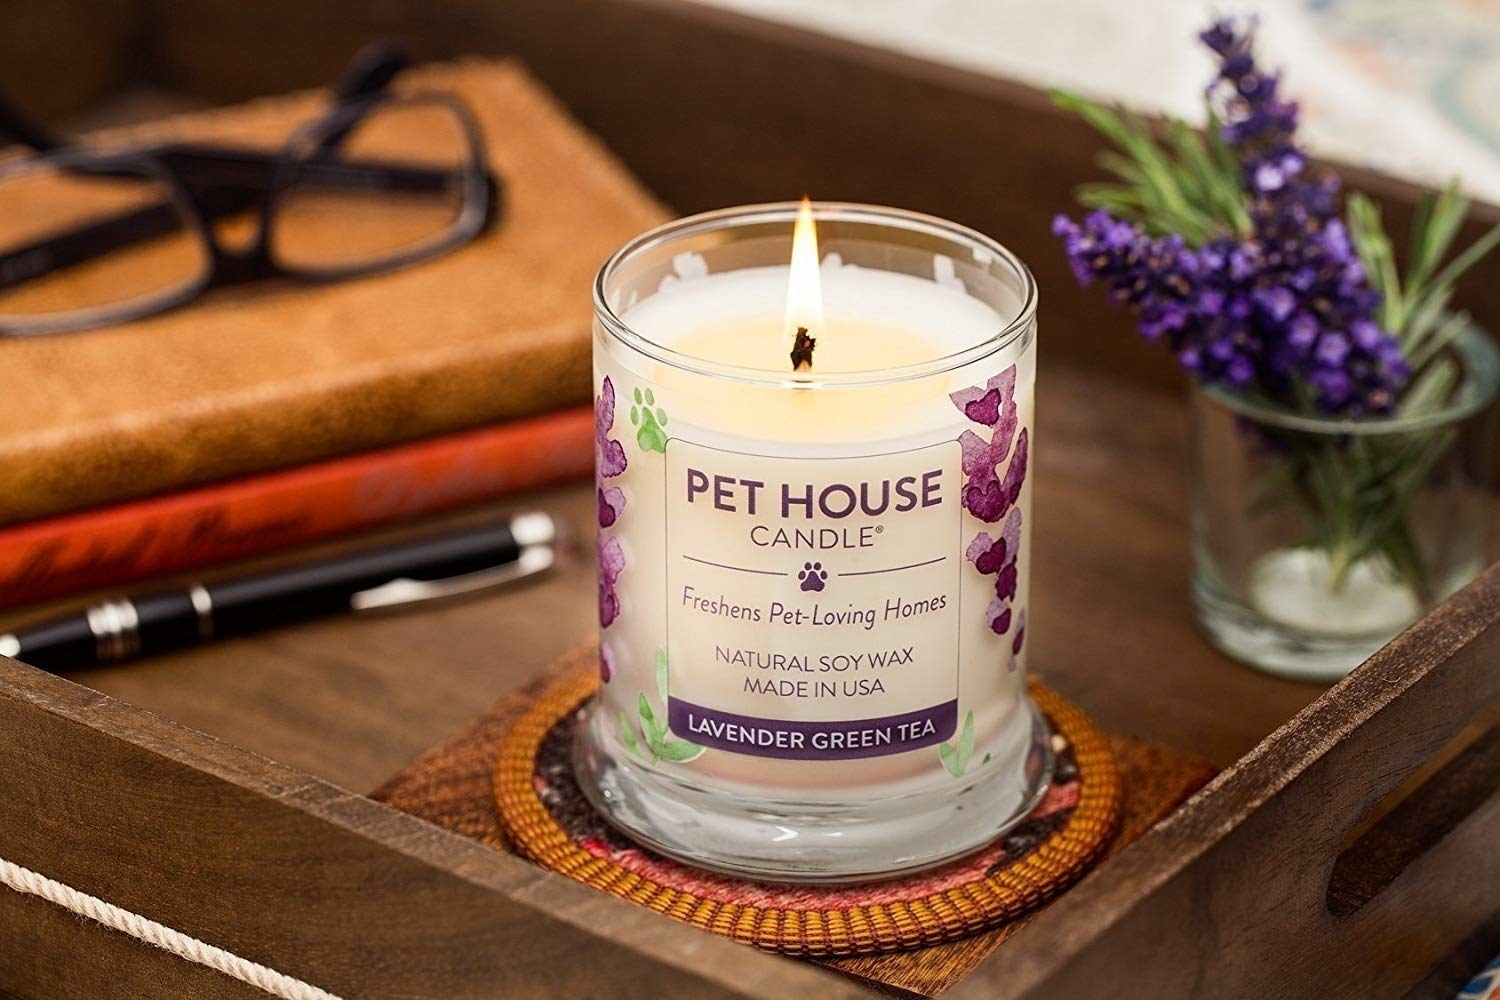 the candle in a lavender green tea scent